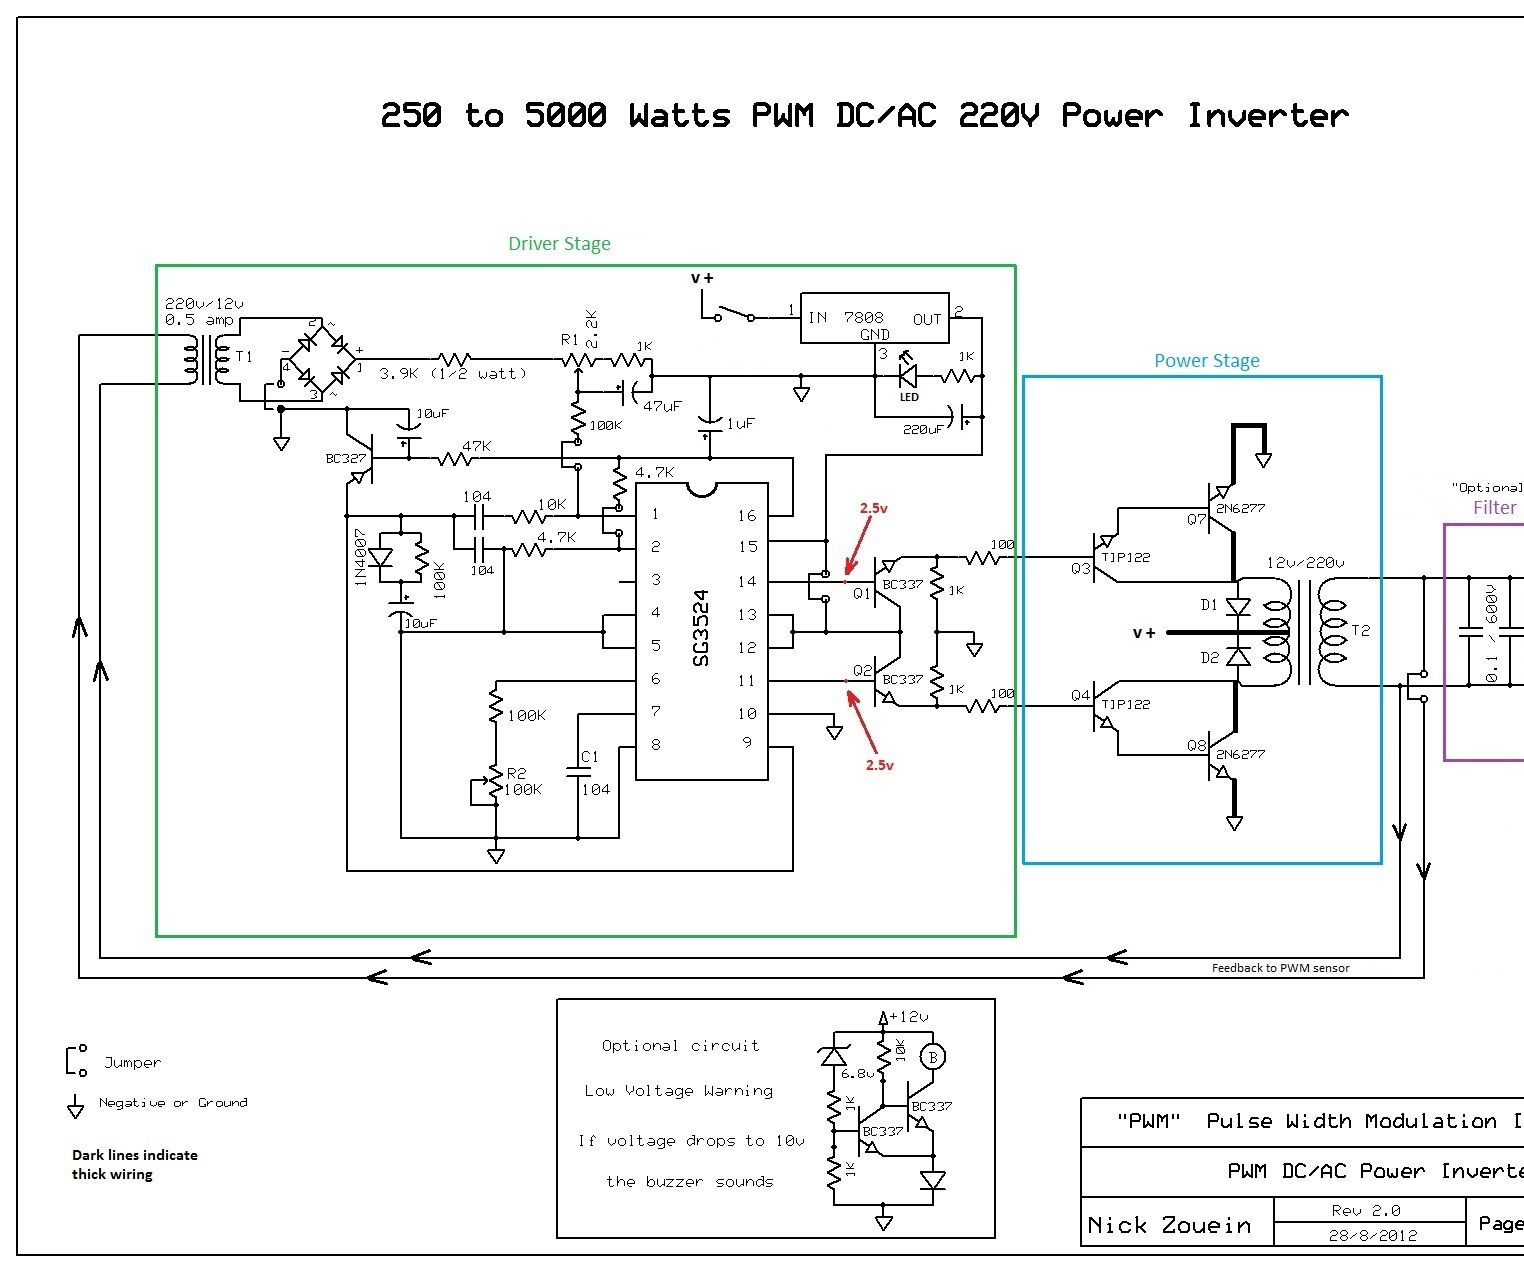 small resolution of 250 to 5000 watts pwm dc ac 220v power inverter dc wiring schematic